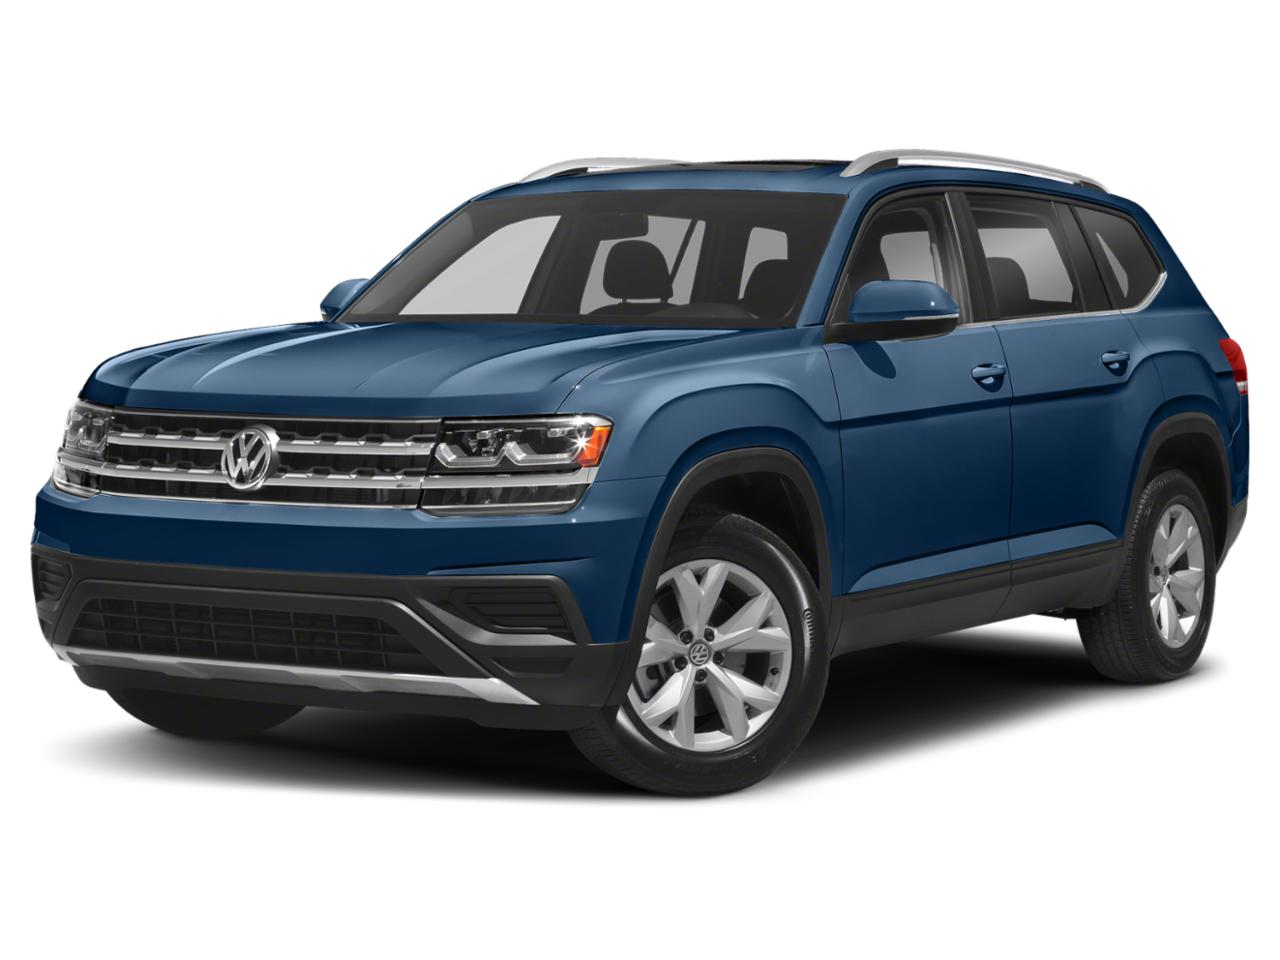 2019 Volkswagen Atlas Vehicle Photo in Cape May Court House, NJ 08210